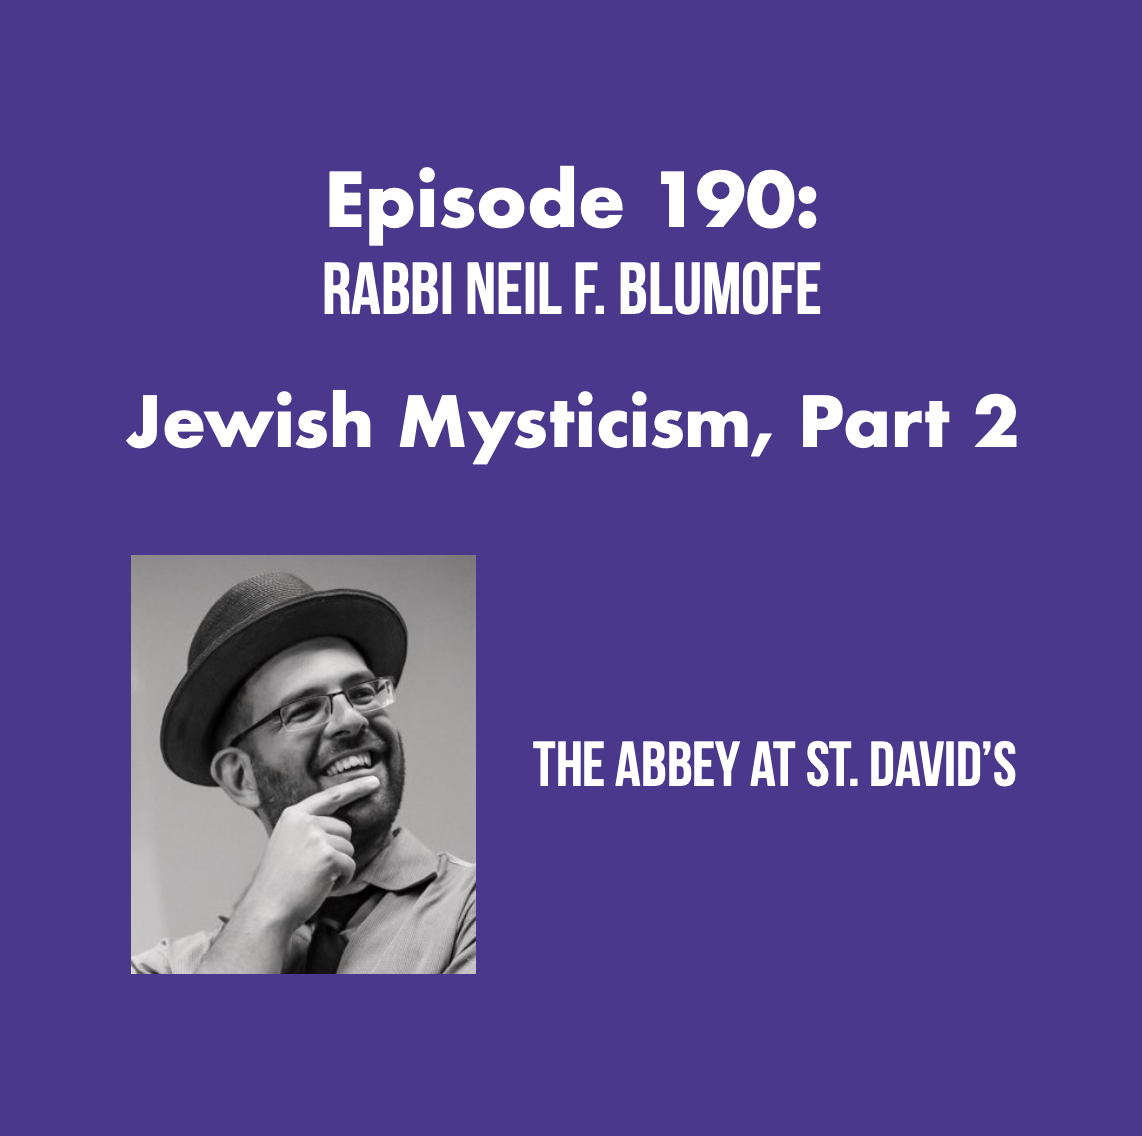 Episode 190:  Jewish Mysticism, Part 2 with Rabbi Neil F. Blumofe